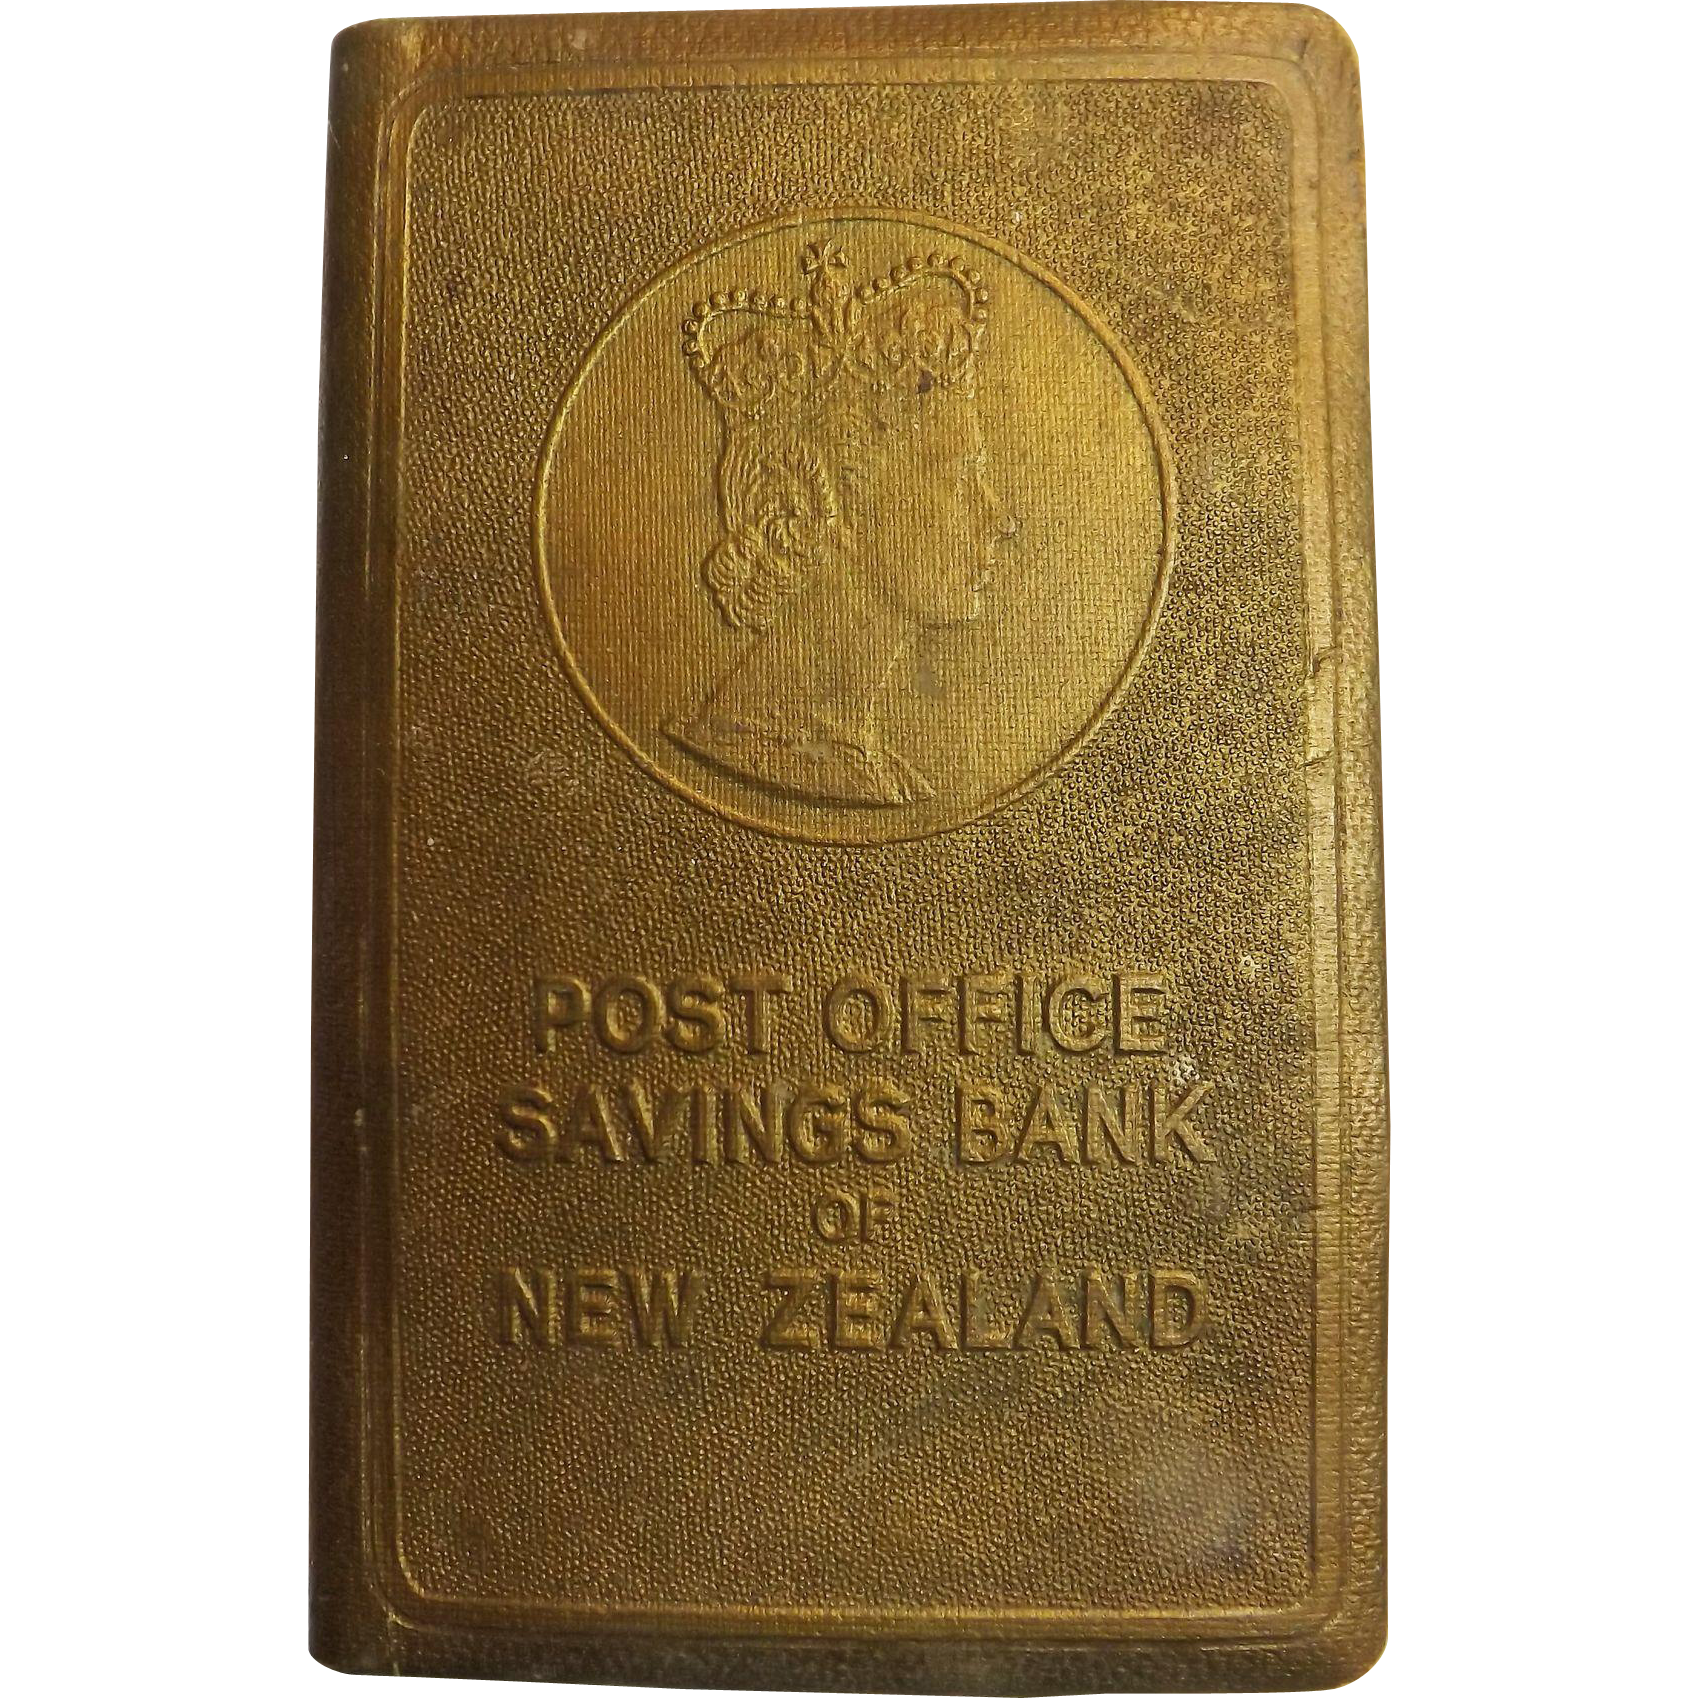 Post office savings bank of new zealand money box antique goodies ruby lane - Open post office savings account ...